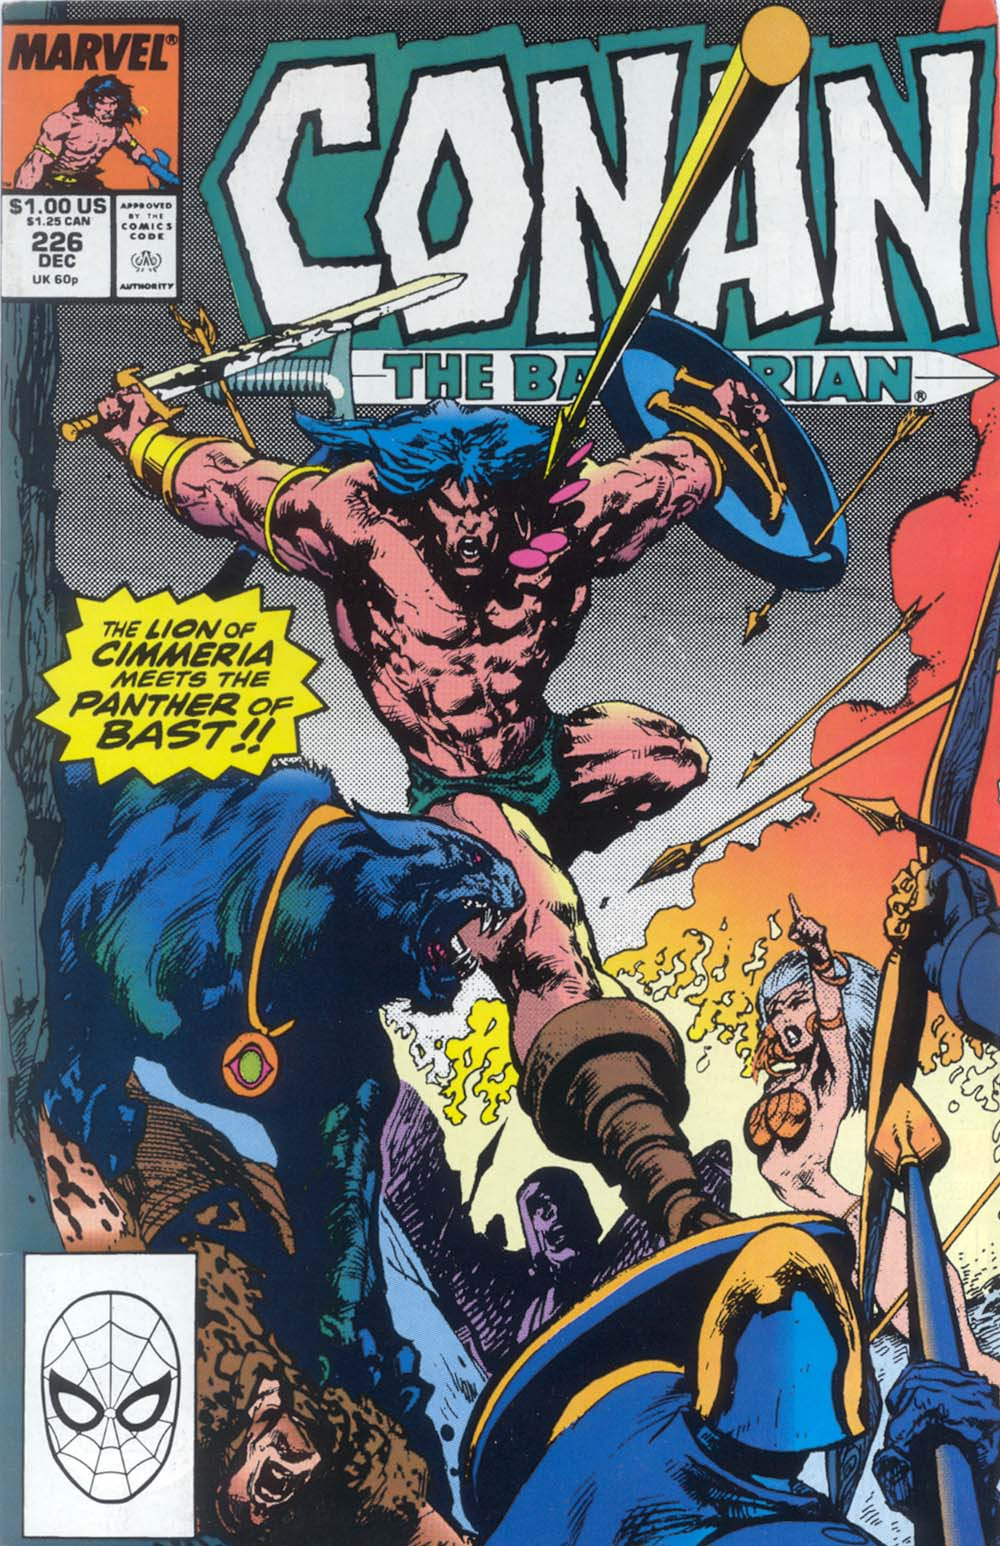 Conan the Barbarian (1970) #226, cover penciled by Jose Delbo & inked by Mark Texeira.